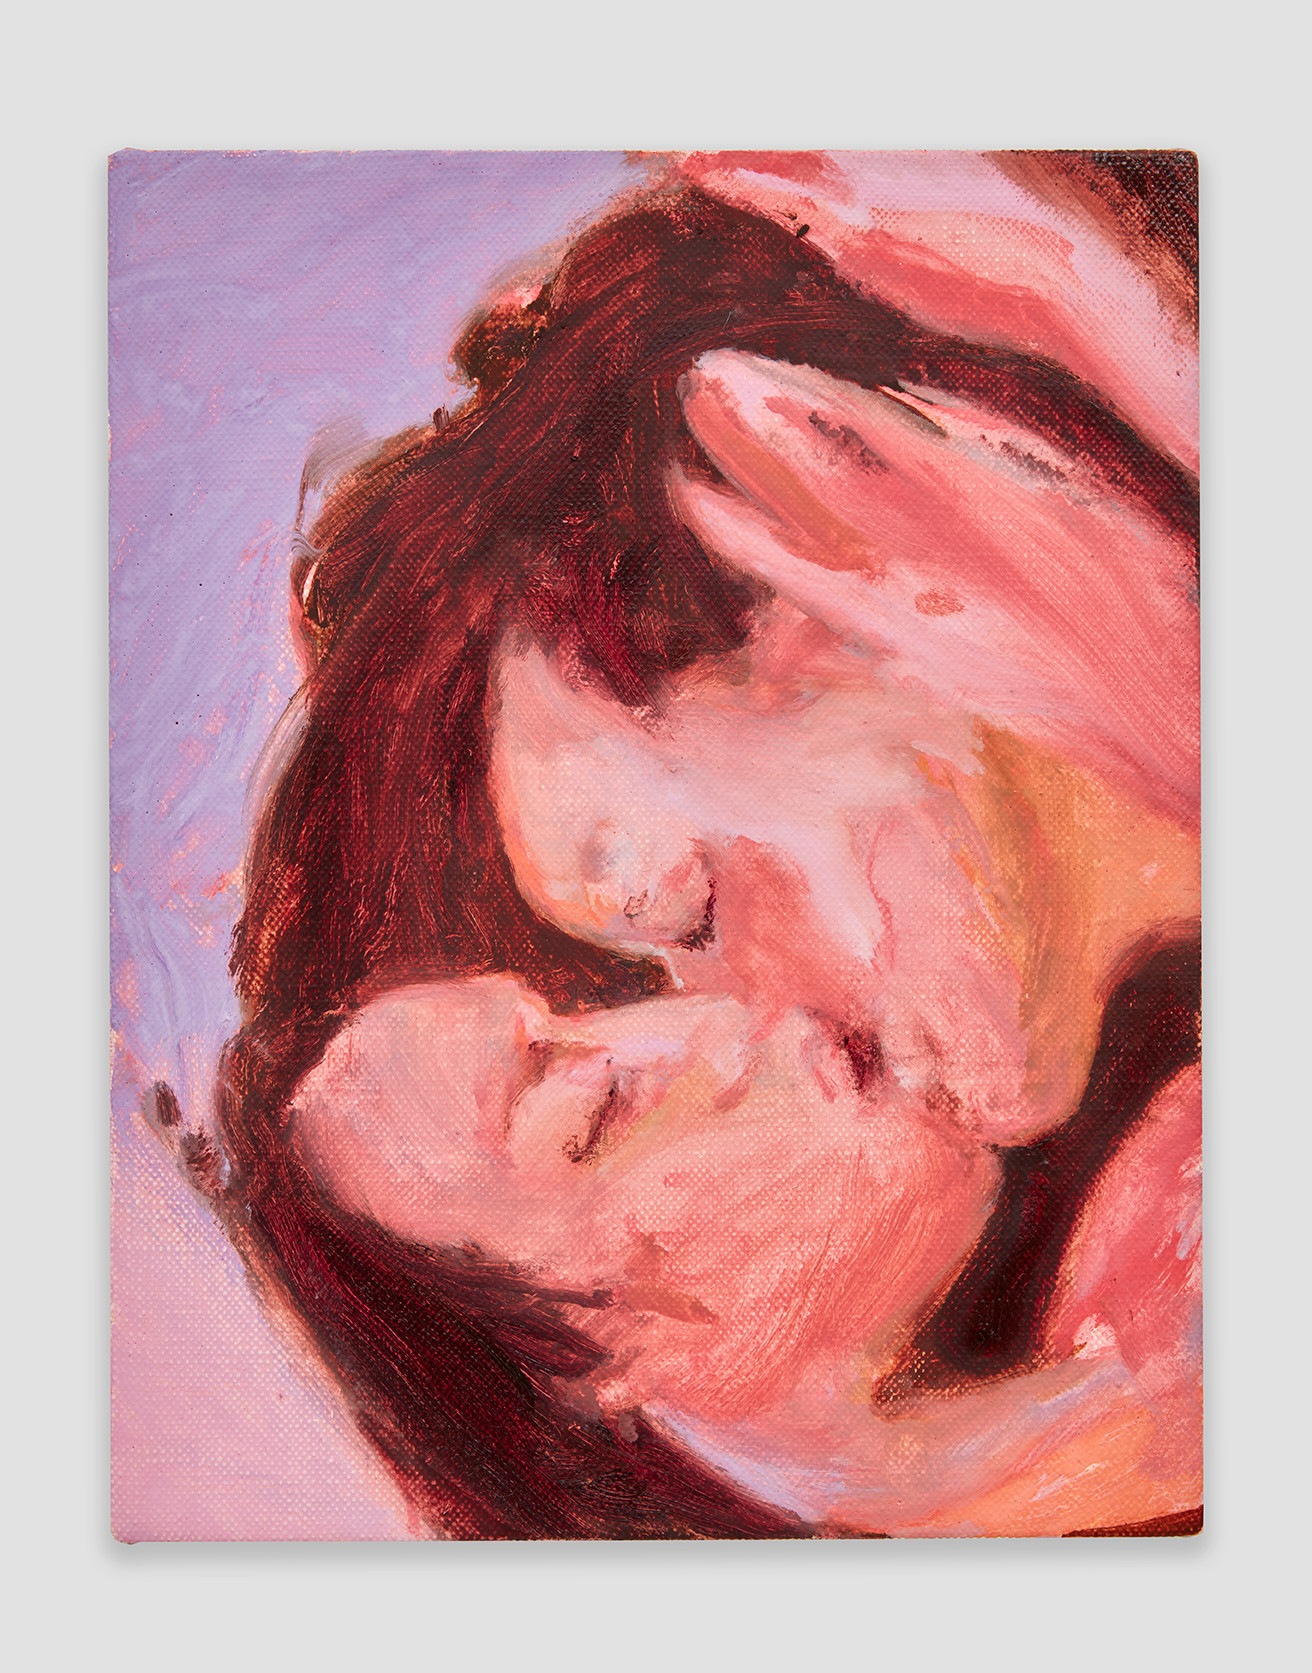 Nicole Wittenberg Bedtime Kiss, 2020Oil on canvas14 x 11 inches